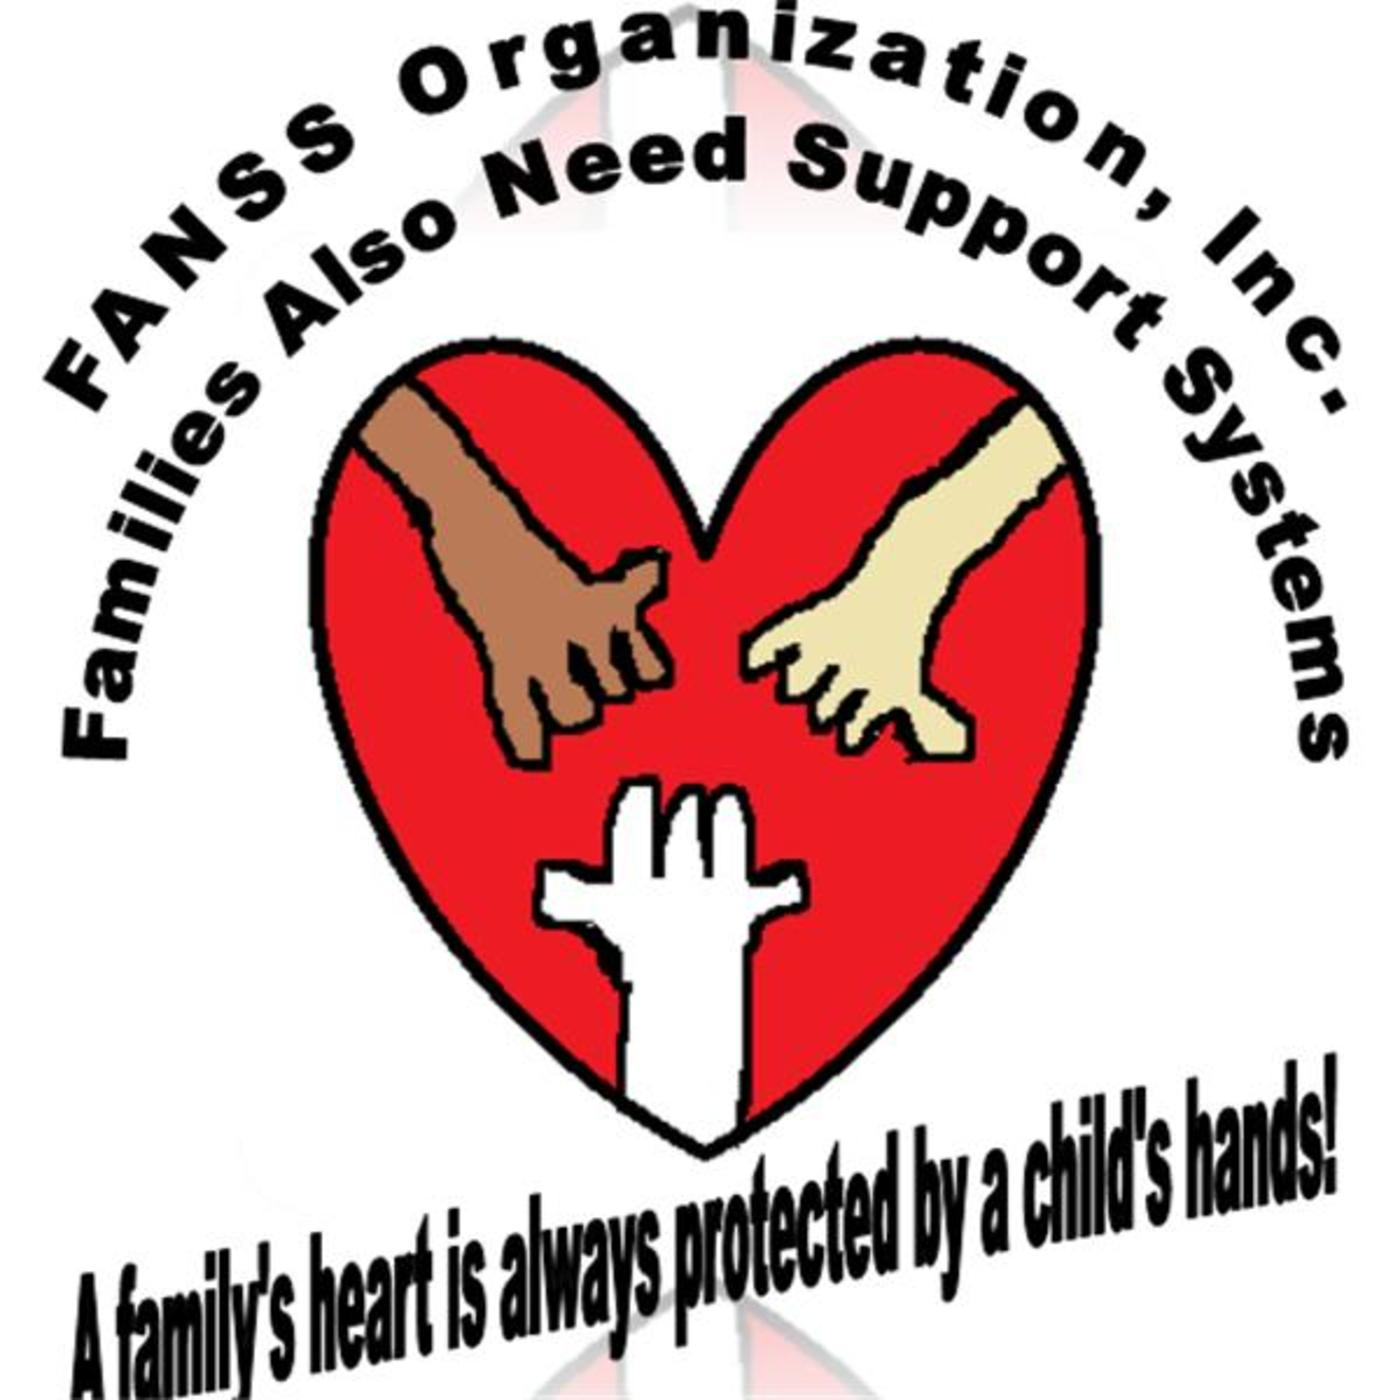 Families Also Need Support Systems